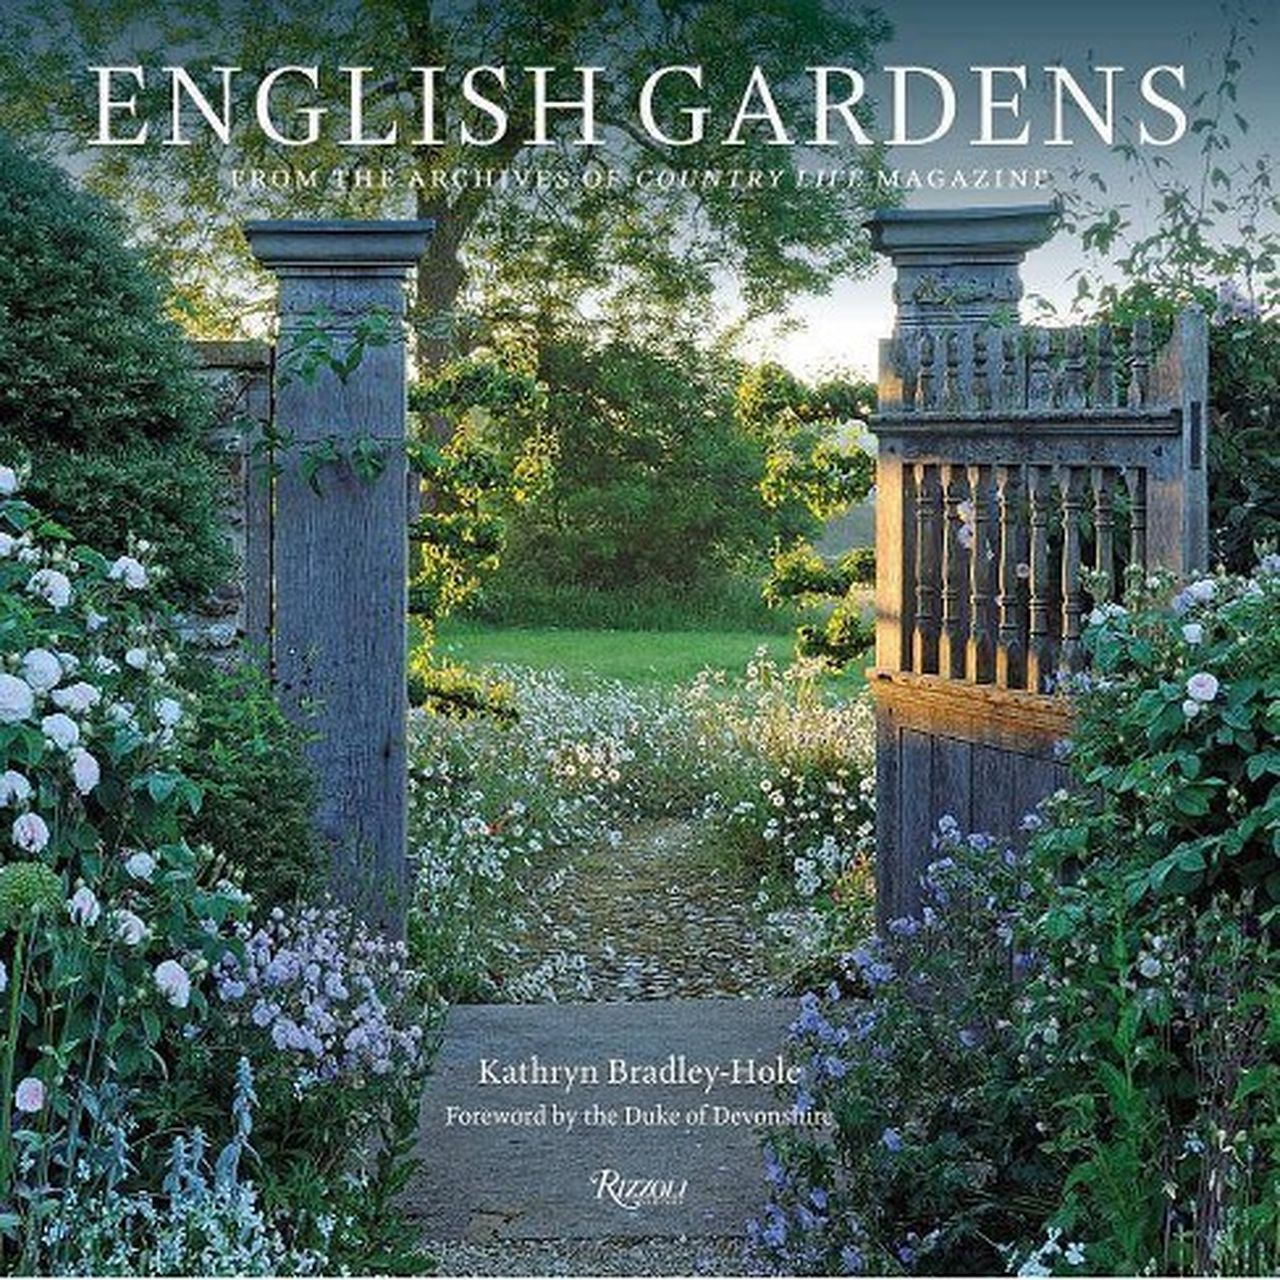 English Gardens by Kathryn Bradley-Hole